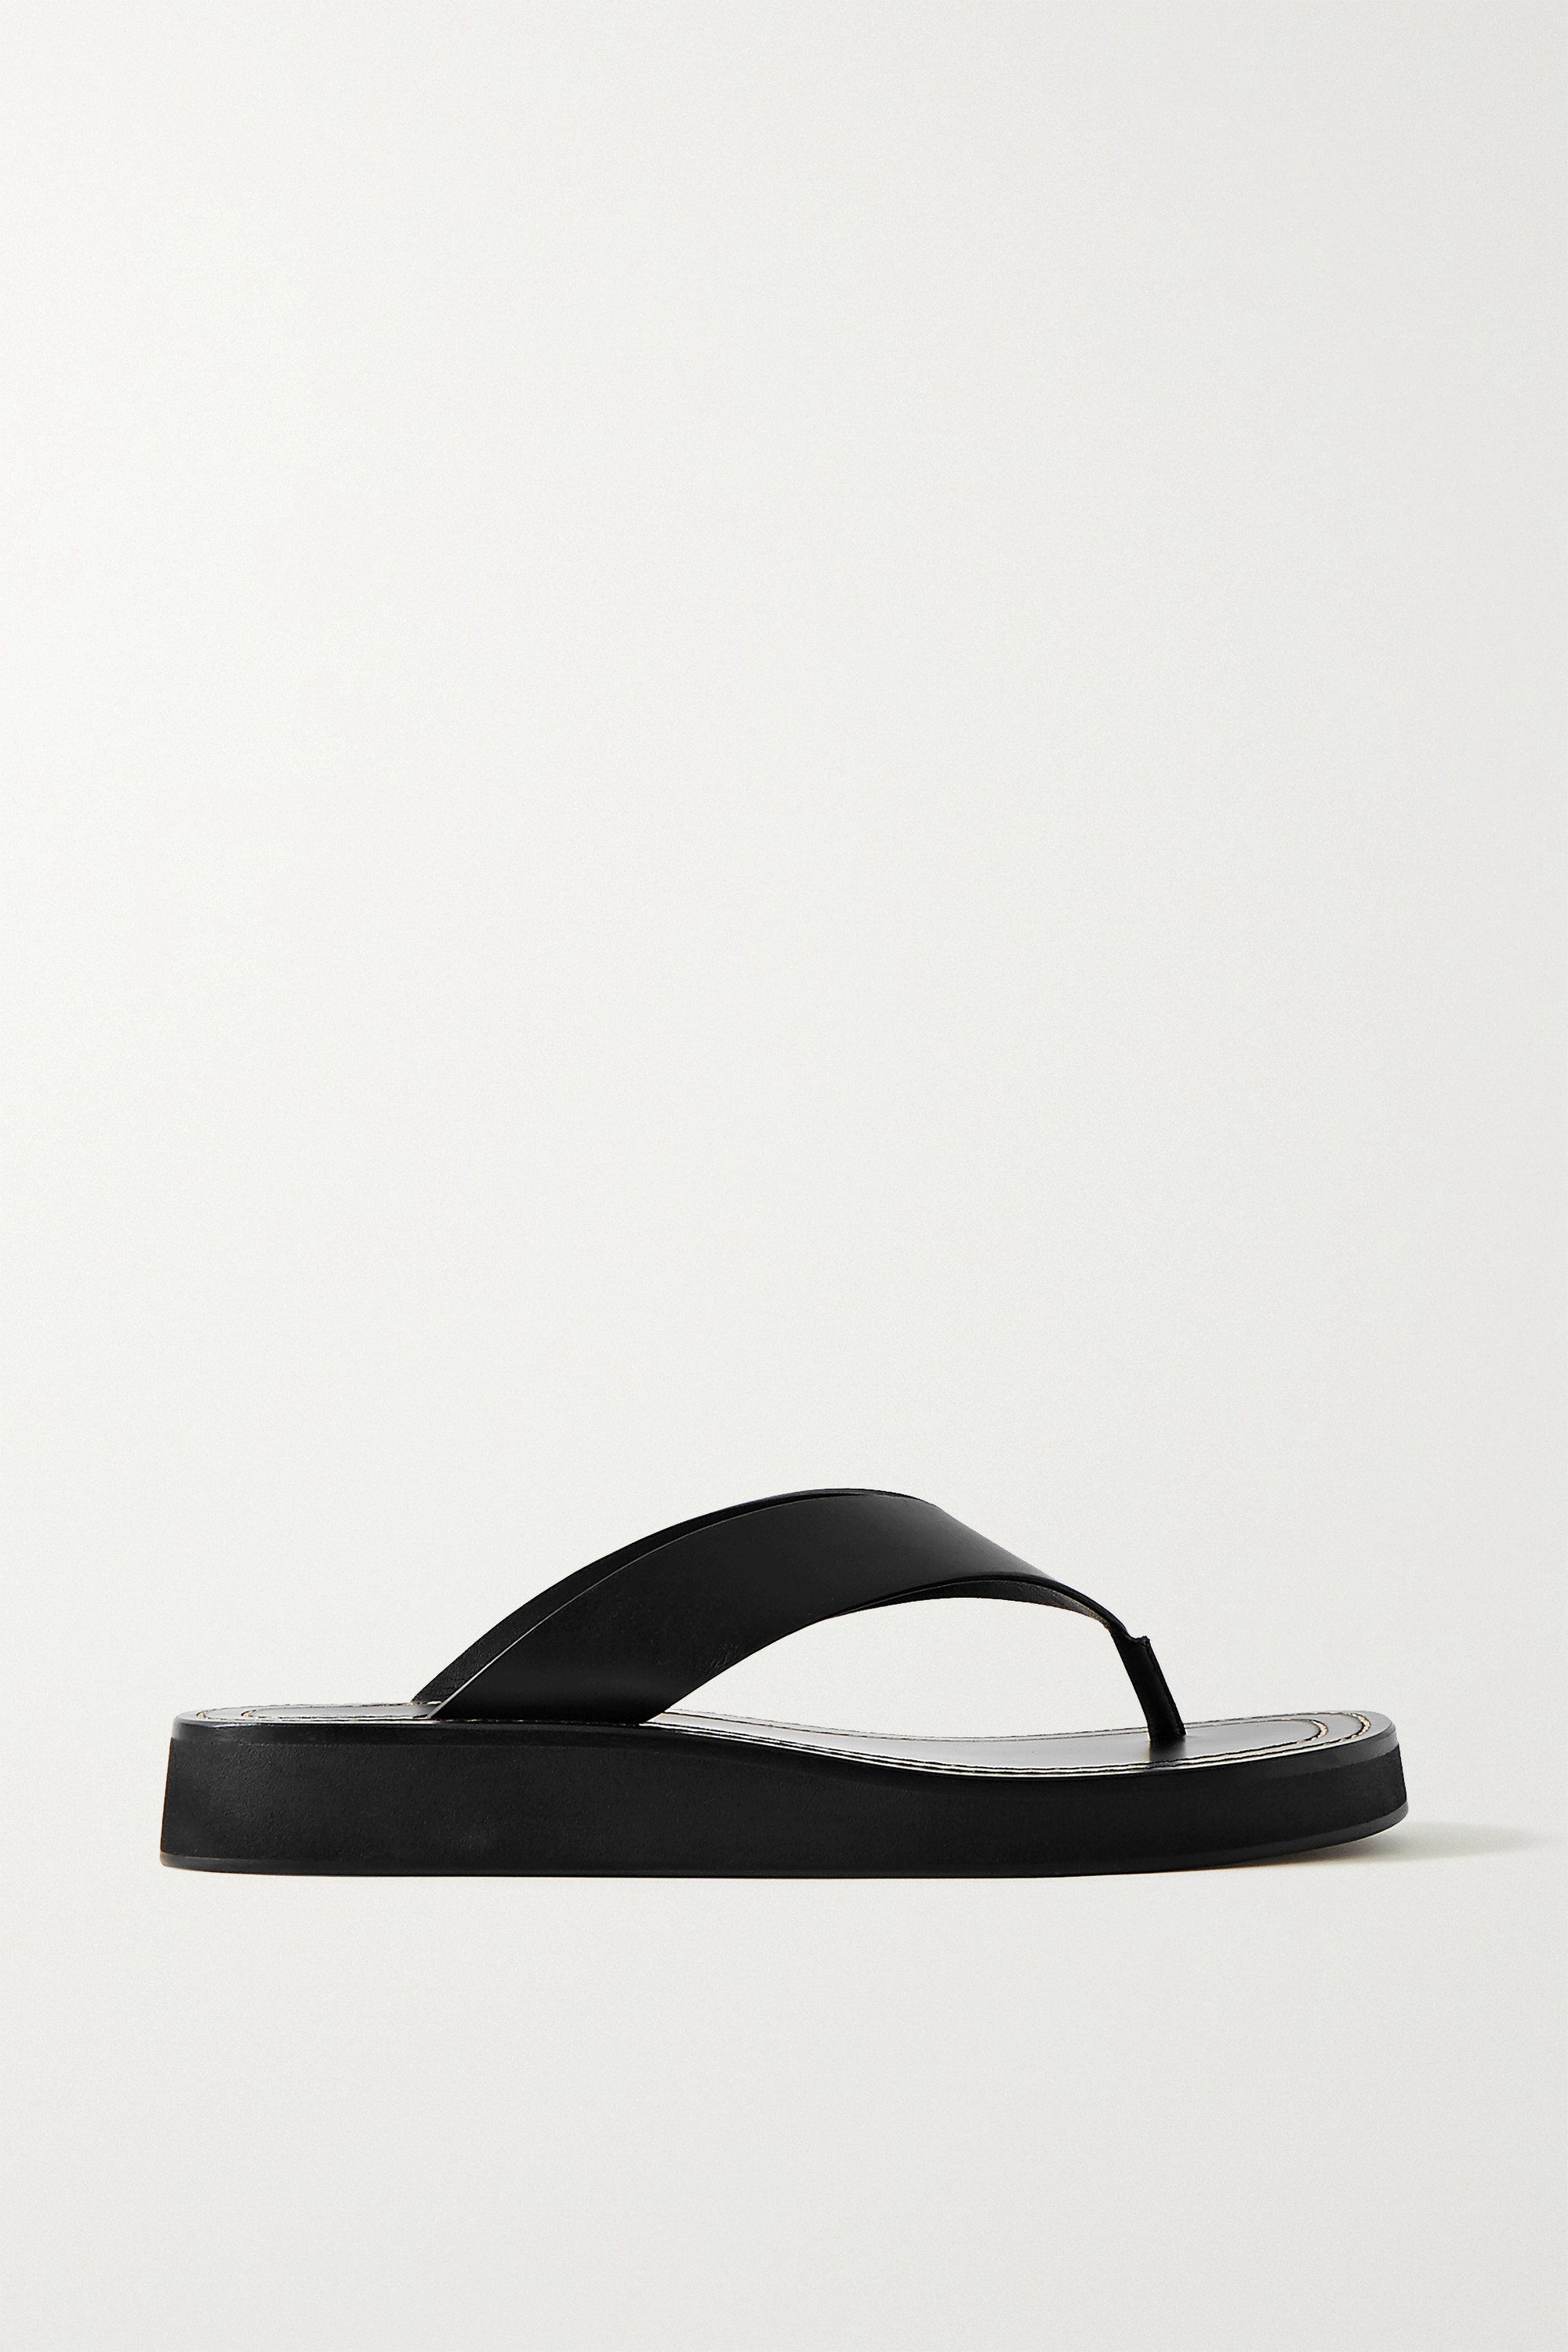 The Row Ginza leather platform flip flops